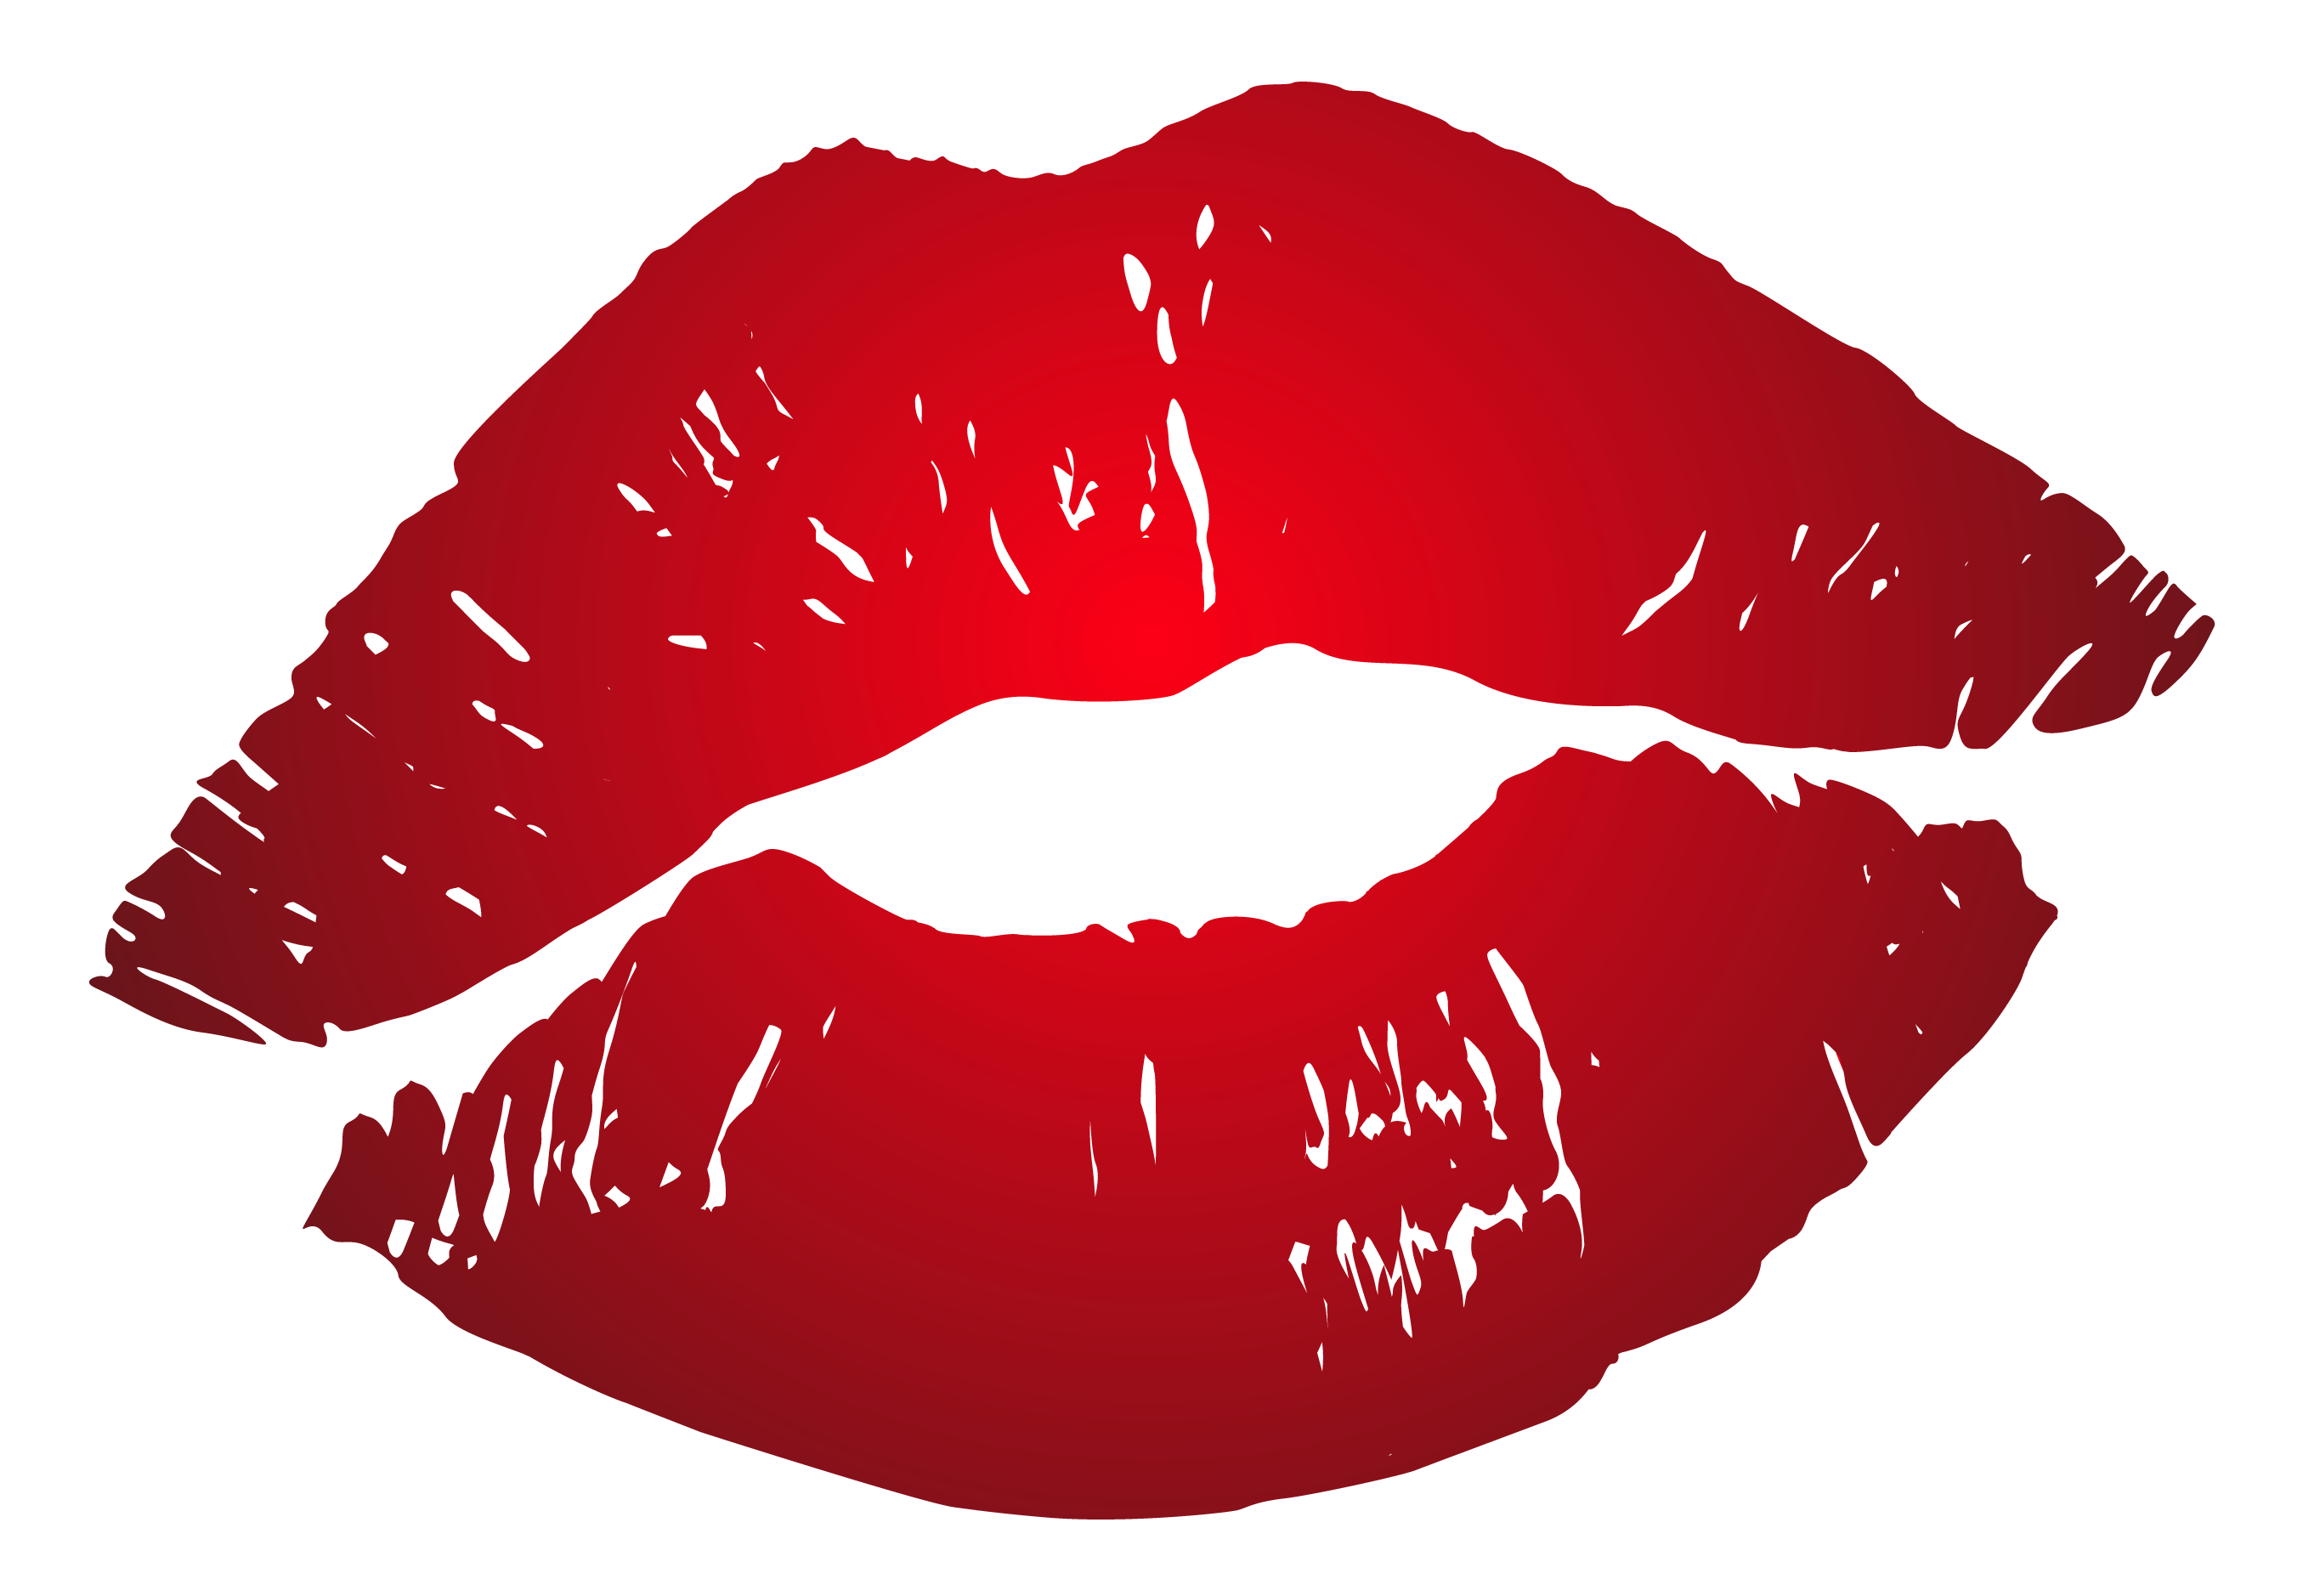 female kiss png transparent image #12066